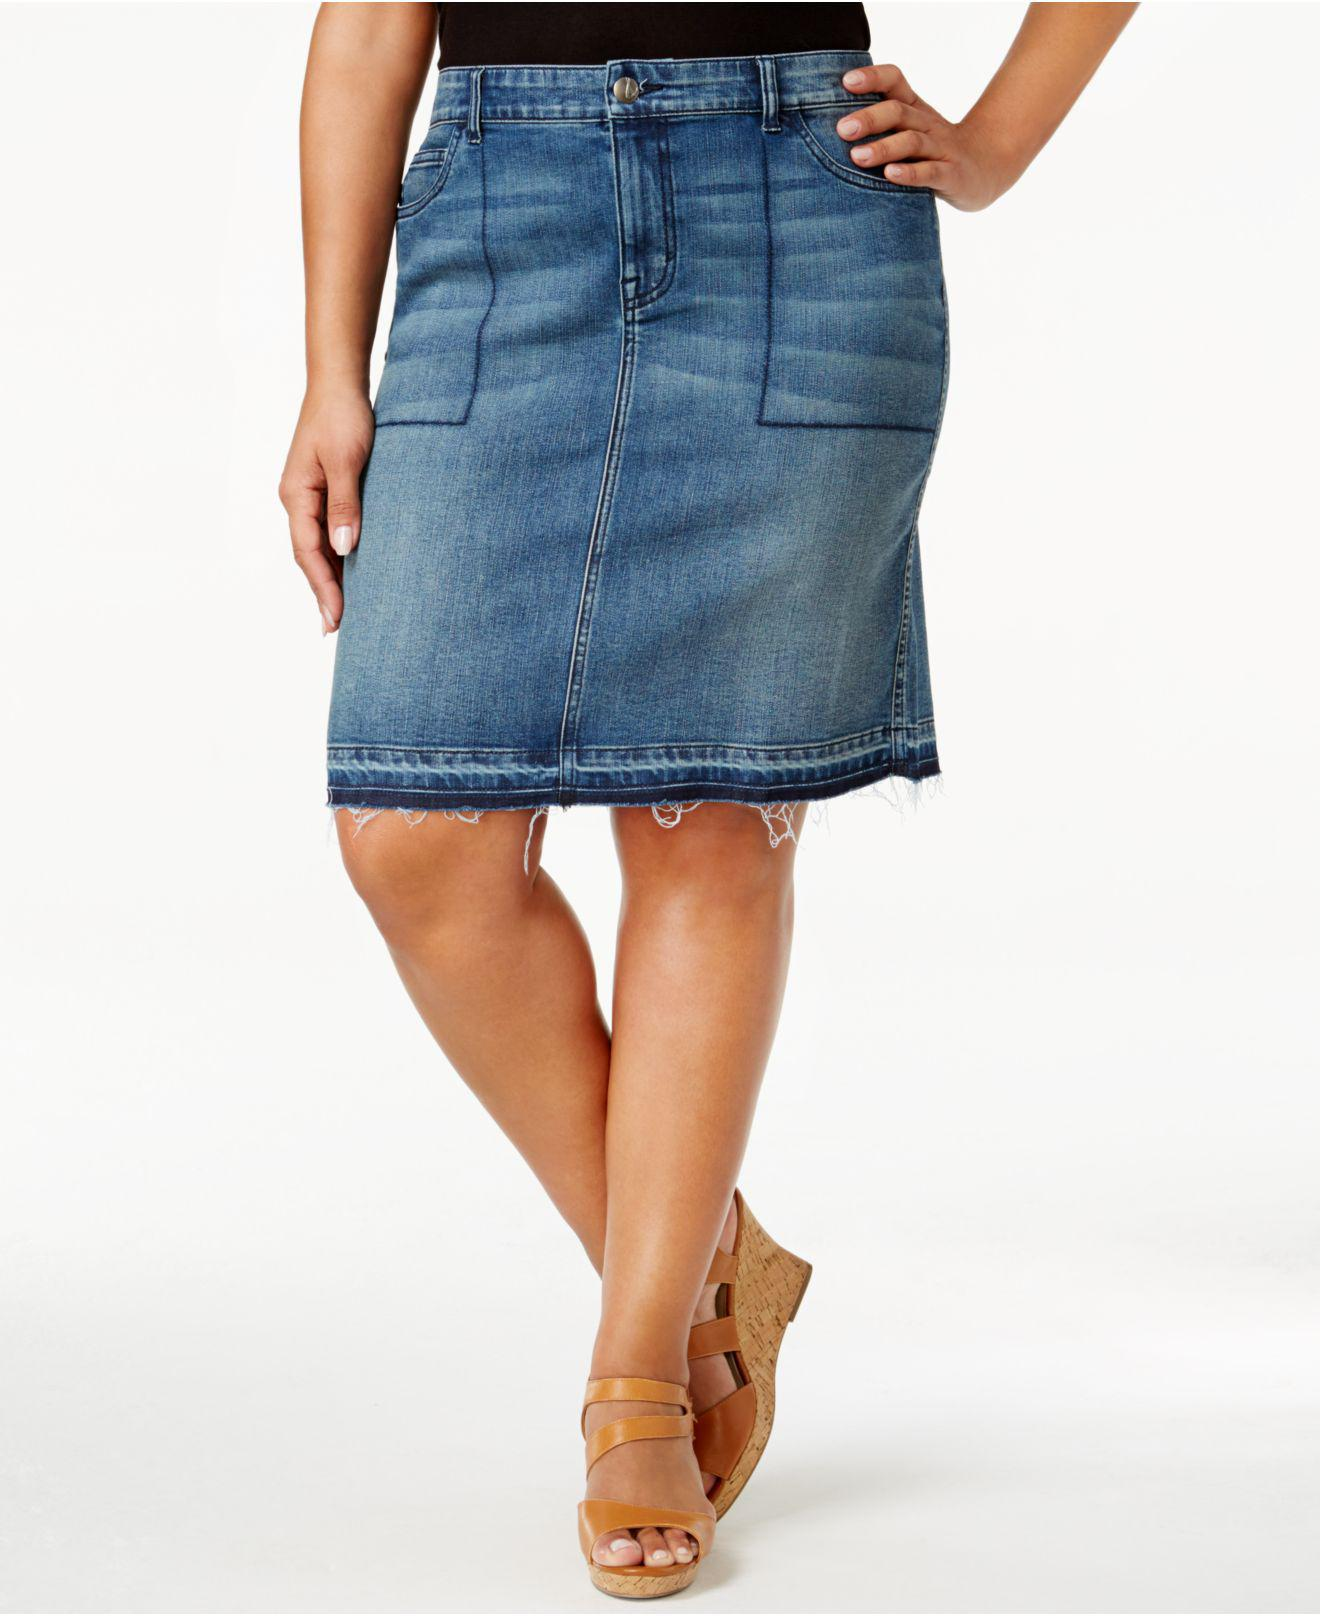 8a3a95b0b17 Lyst - Style   Co. Plus Size Distressed Denim Skirt in Blue